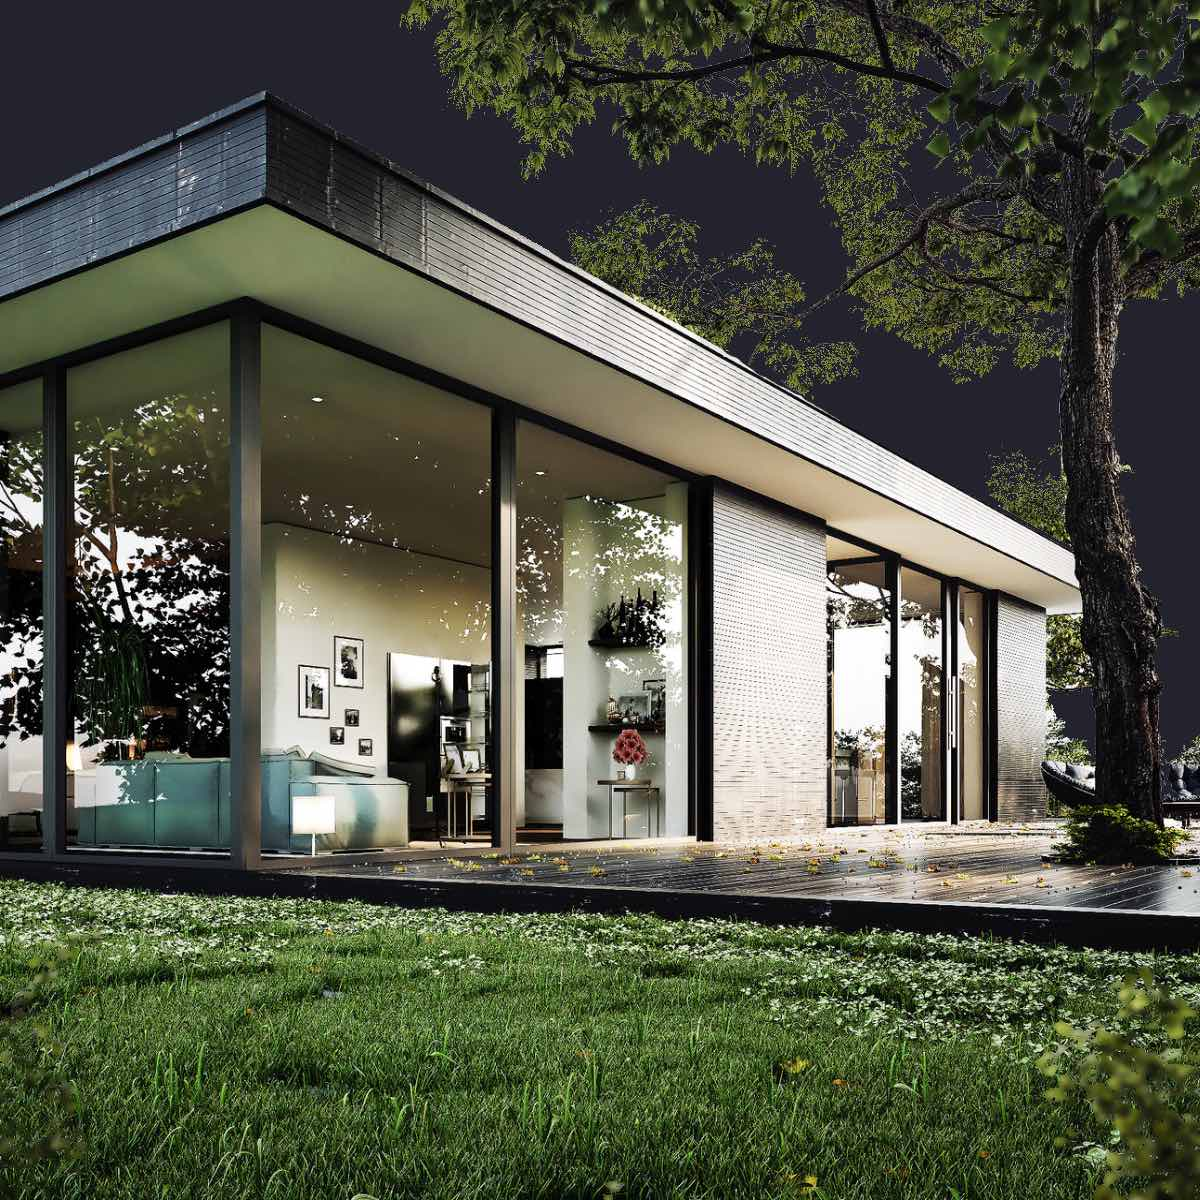 Architektur Rendering Architecture Visualization - Estate Render